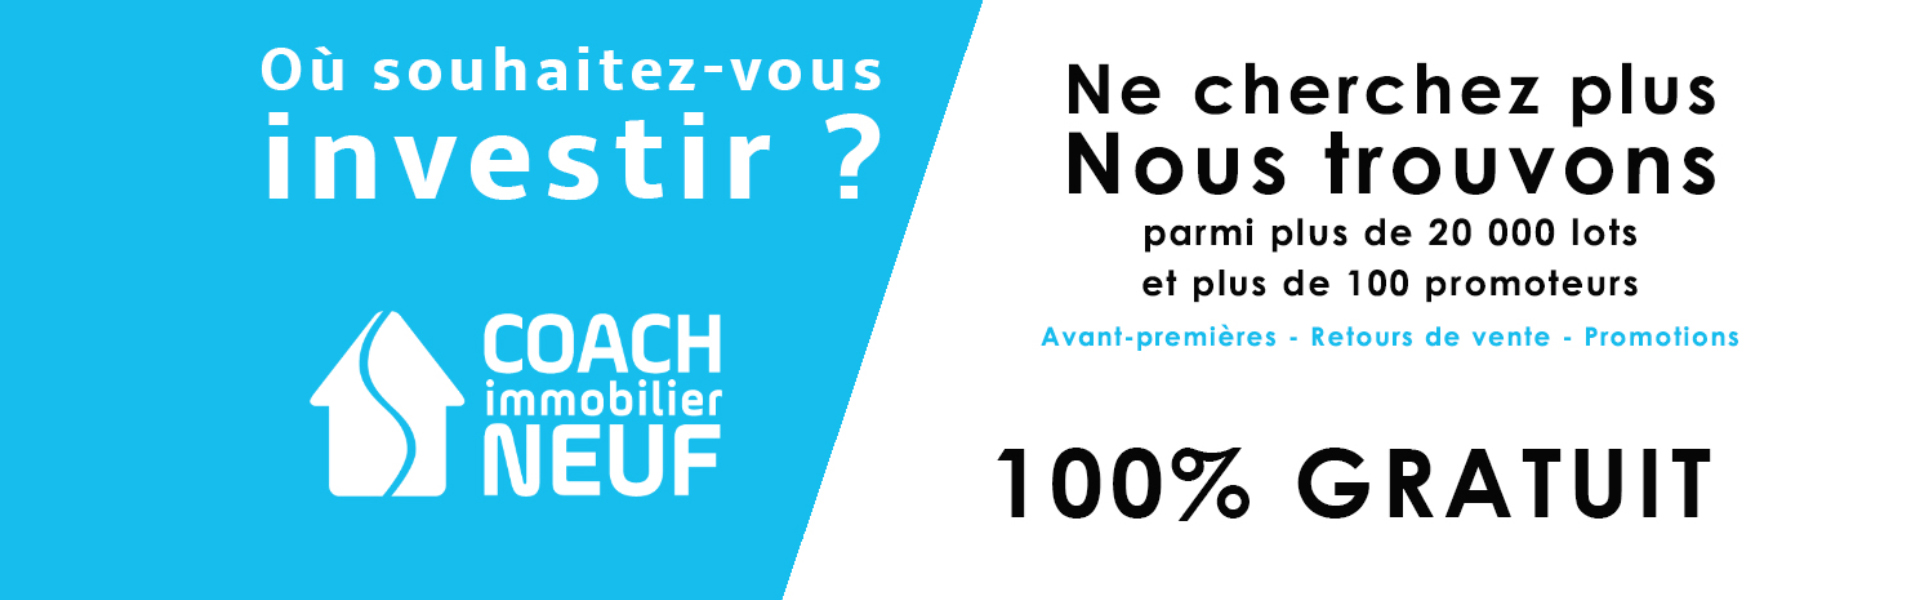 Coach immobilier Neuf